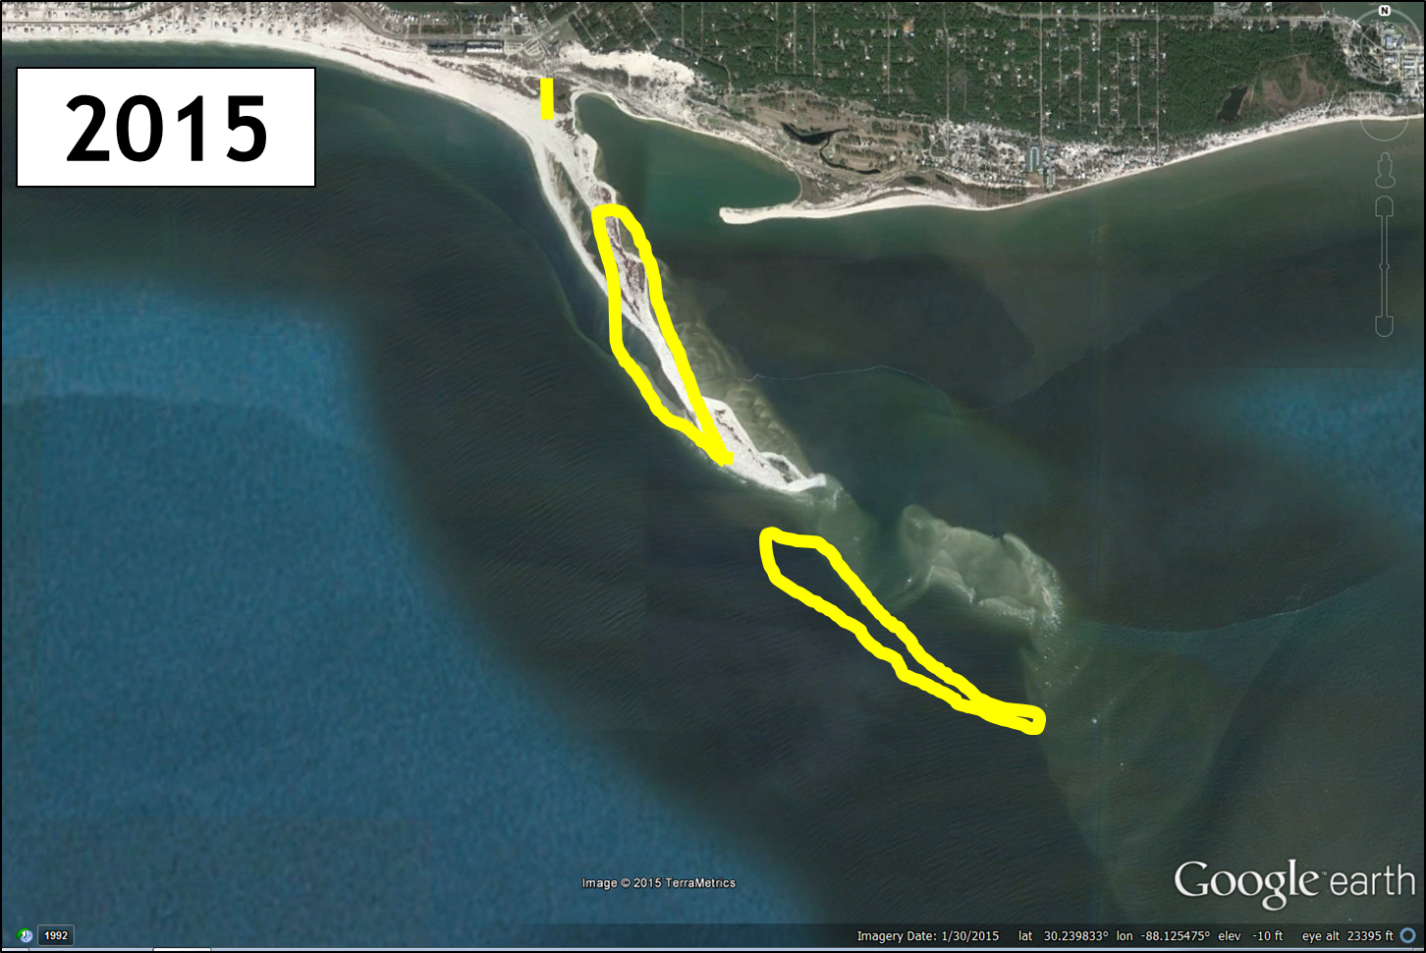 Pelican Island on Dauphin Island, Alabama, in 2015. Yellow outline is the main land masses in 1992 and the northern yellow mark is the location of the Dauphin Island Public Pier. Imagery from Google Earth.